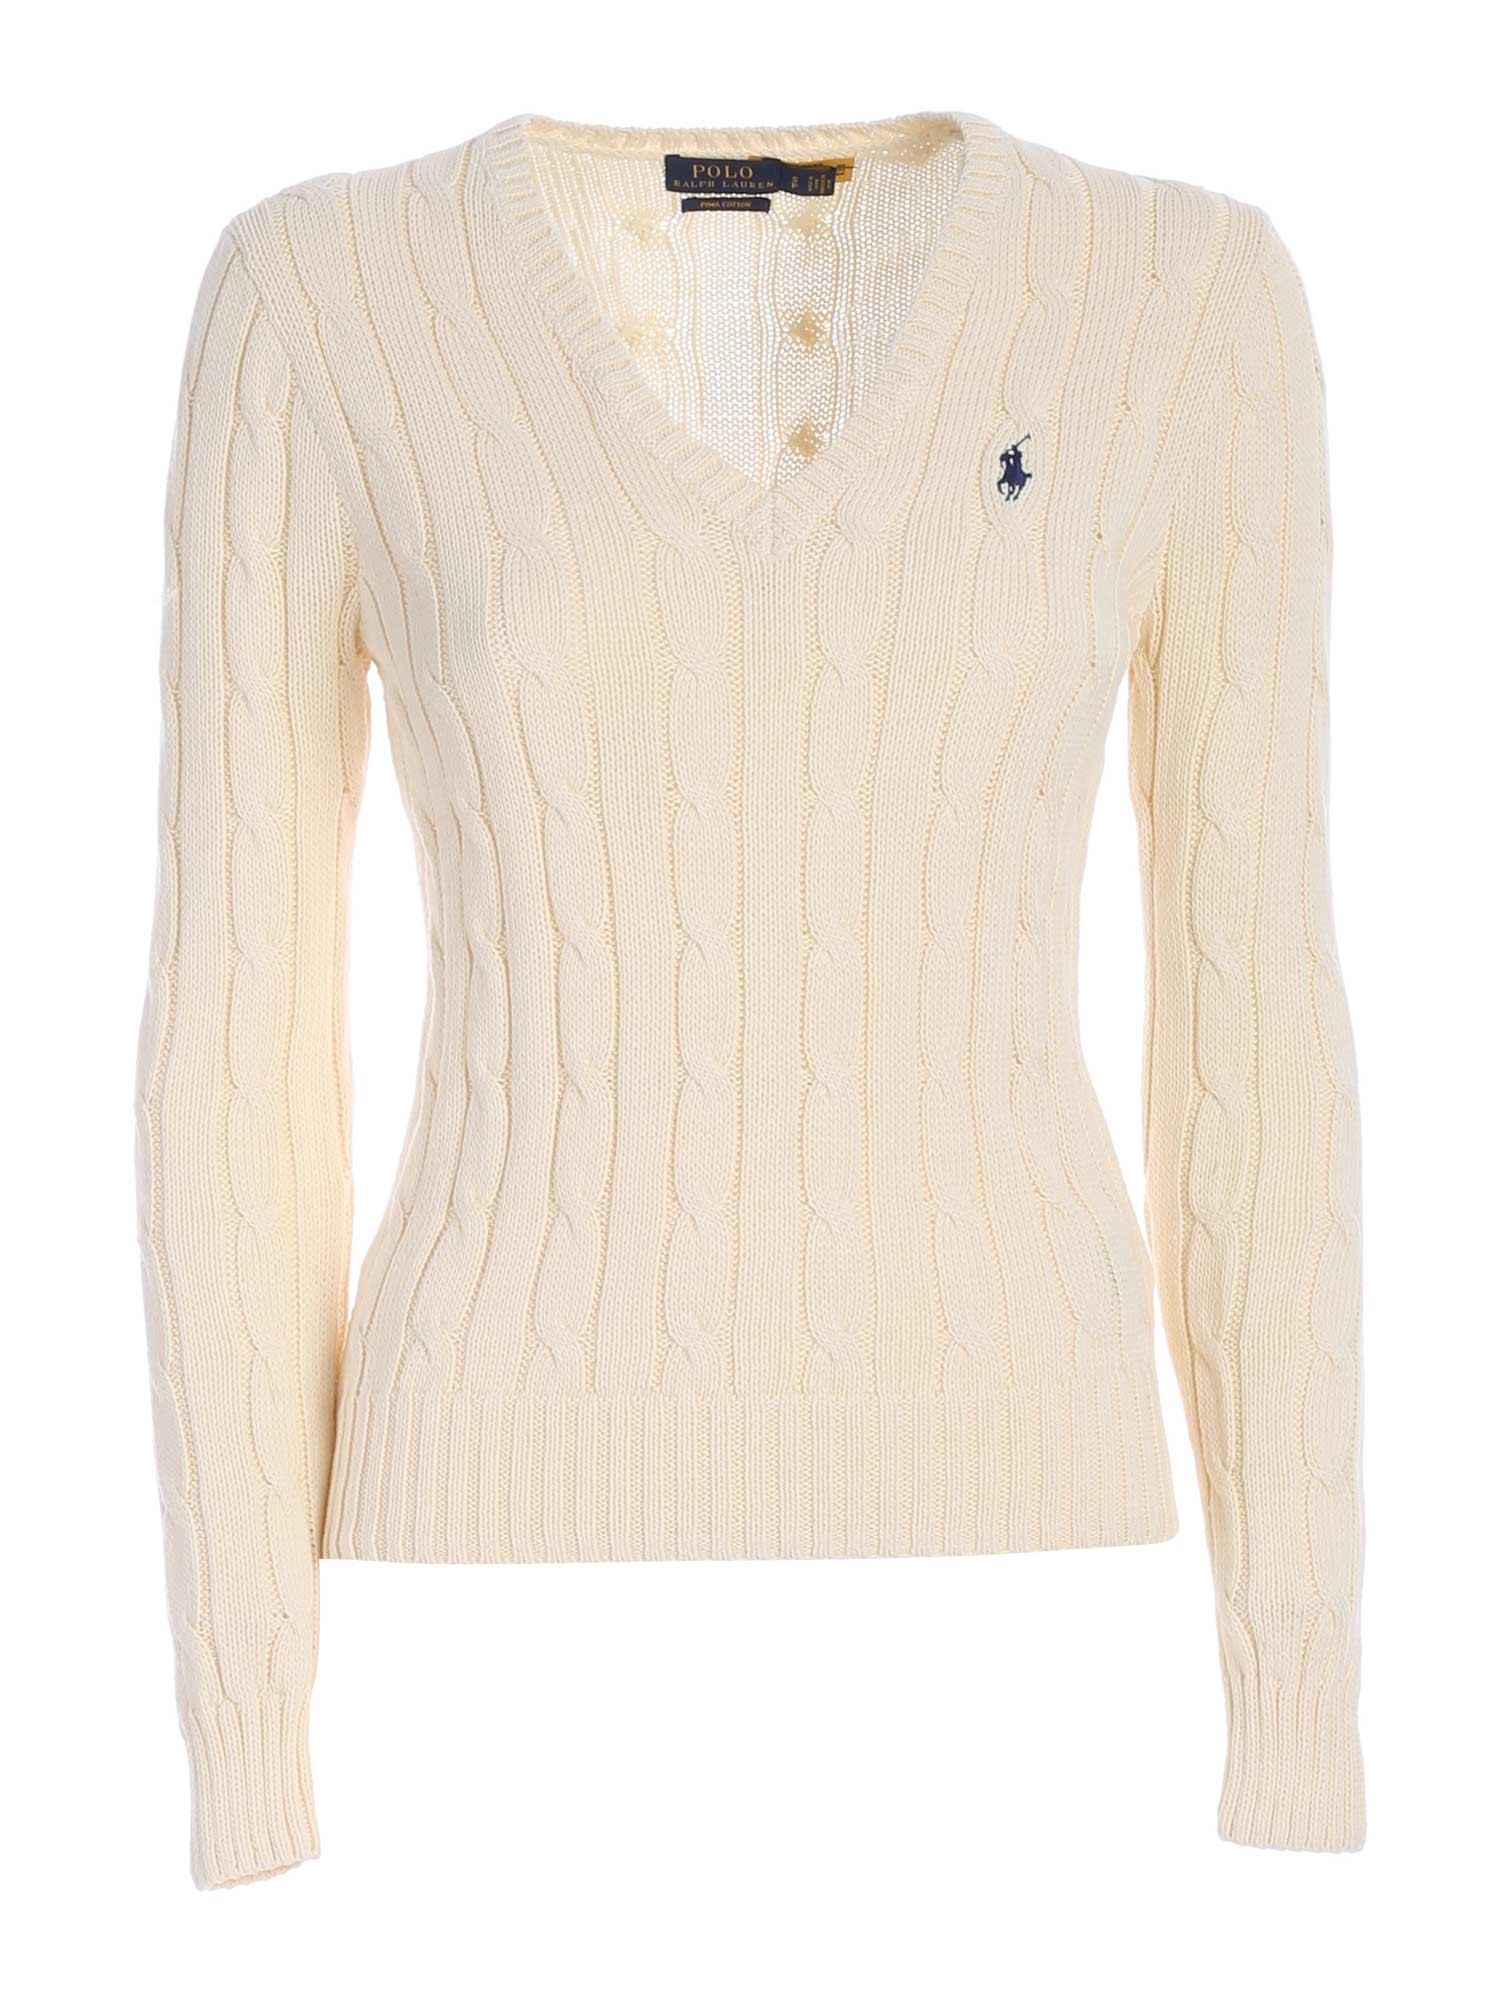 Polo Ralph Lauren Cottons LOGO EMBROIDERY SWEATER IN CREAM COLOR